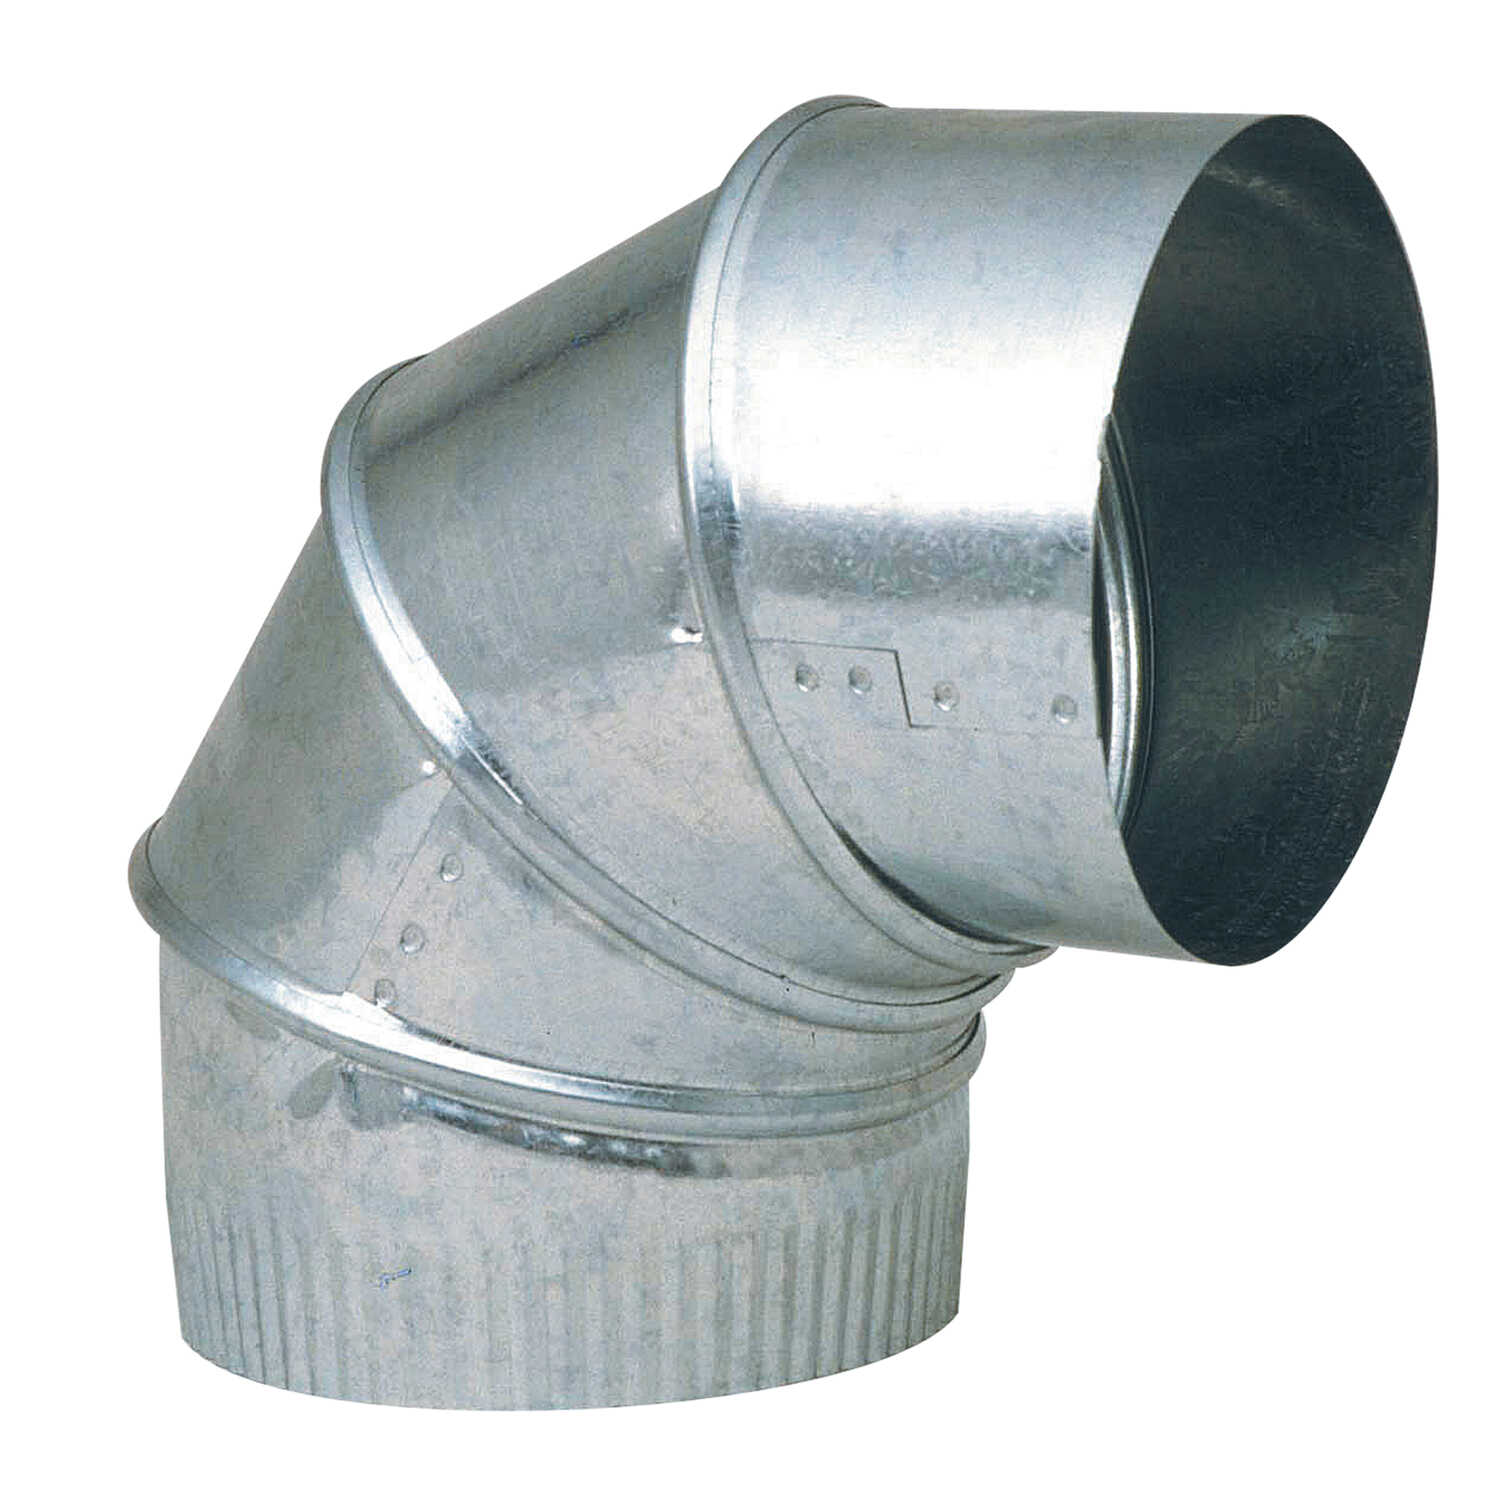 Imperial Manufacturing  6 in. Dia. x 6 in. Dia. Adjustable 90 deg. Galvanized SteelSteel  Stove Pipe